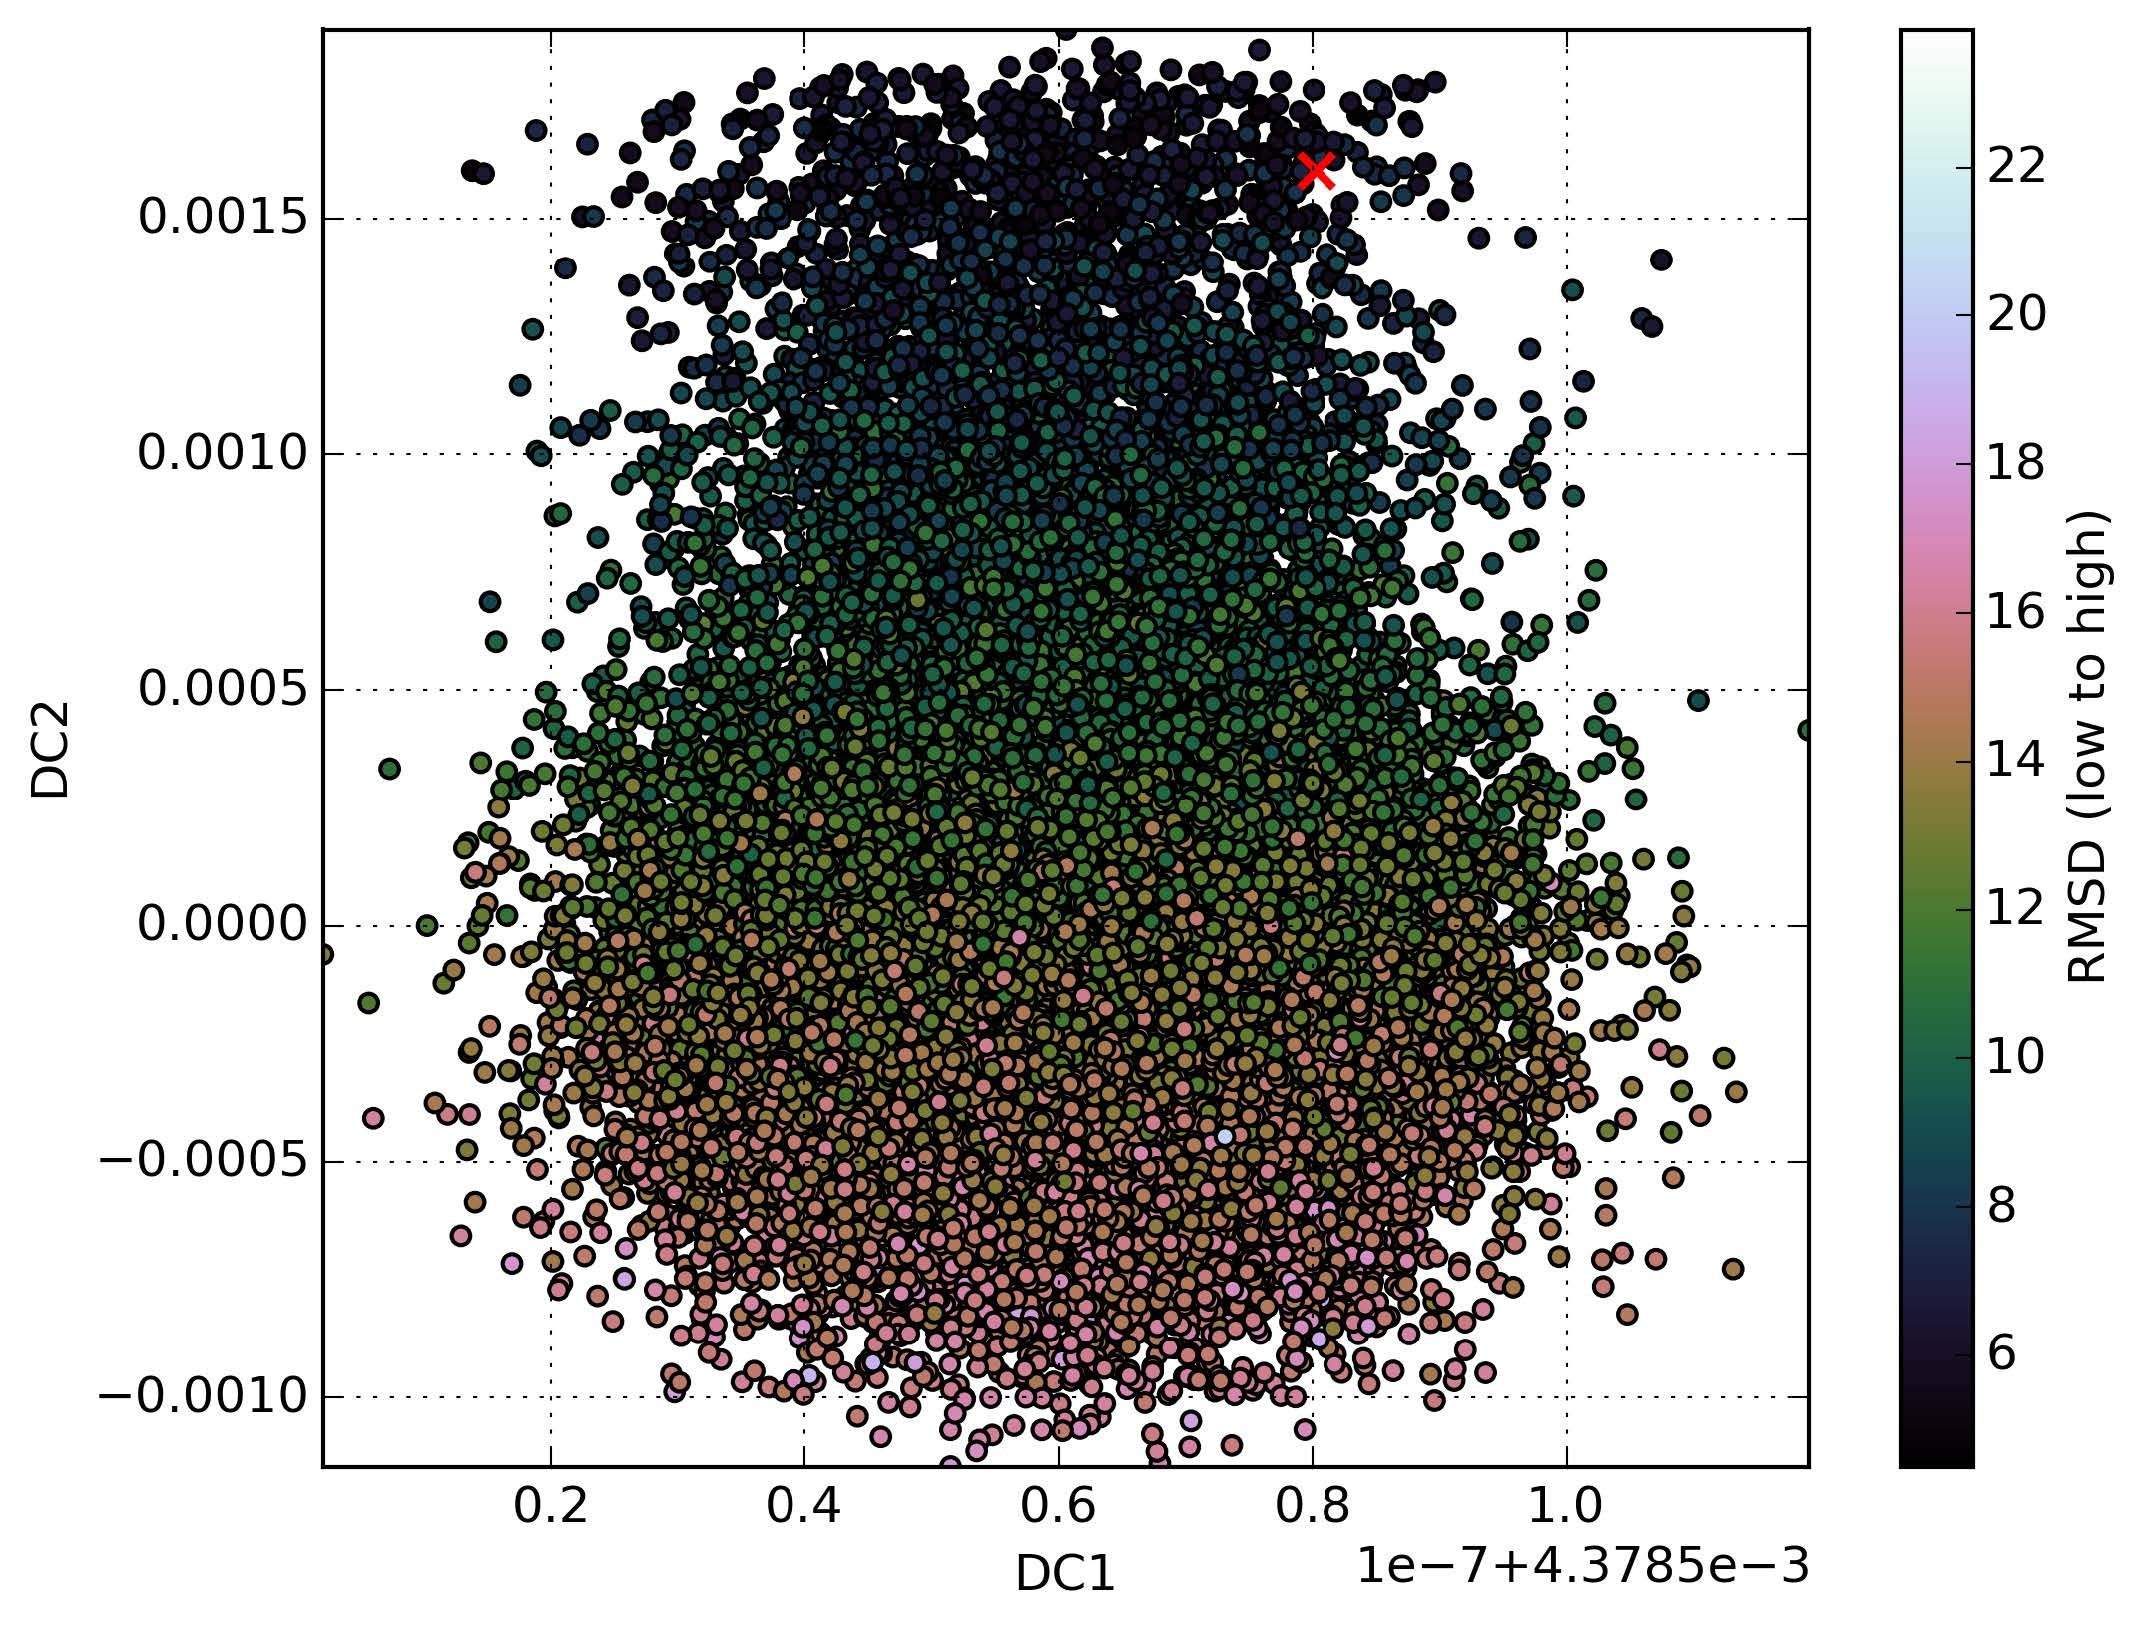 Figure 1. Results presented here are the structural data for 1HHP, the aspartyl protease from HIV-1 isolate BRU, projected on the top two diffusion coordinates. The amount of variance captured by the coordinates is unknown due to the use of ARPACK. Points are color coded based on their lRMSD from the native, marked by the red 'x'.